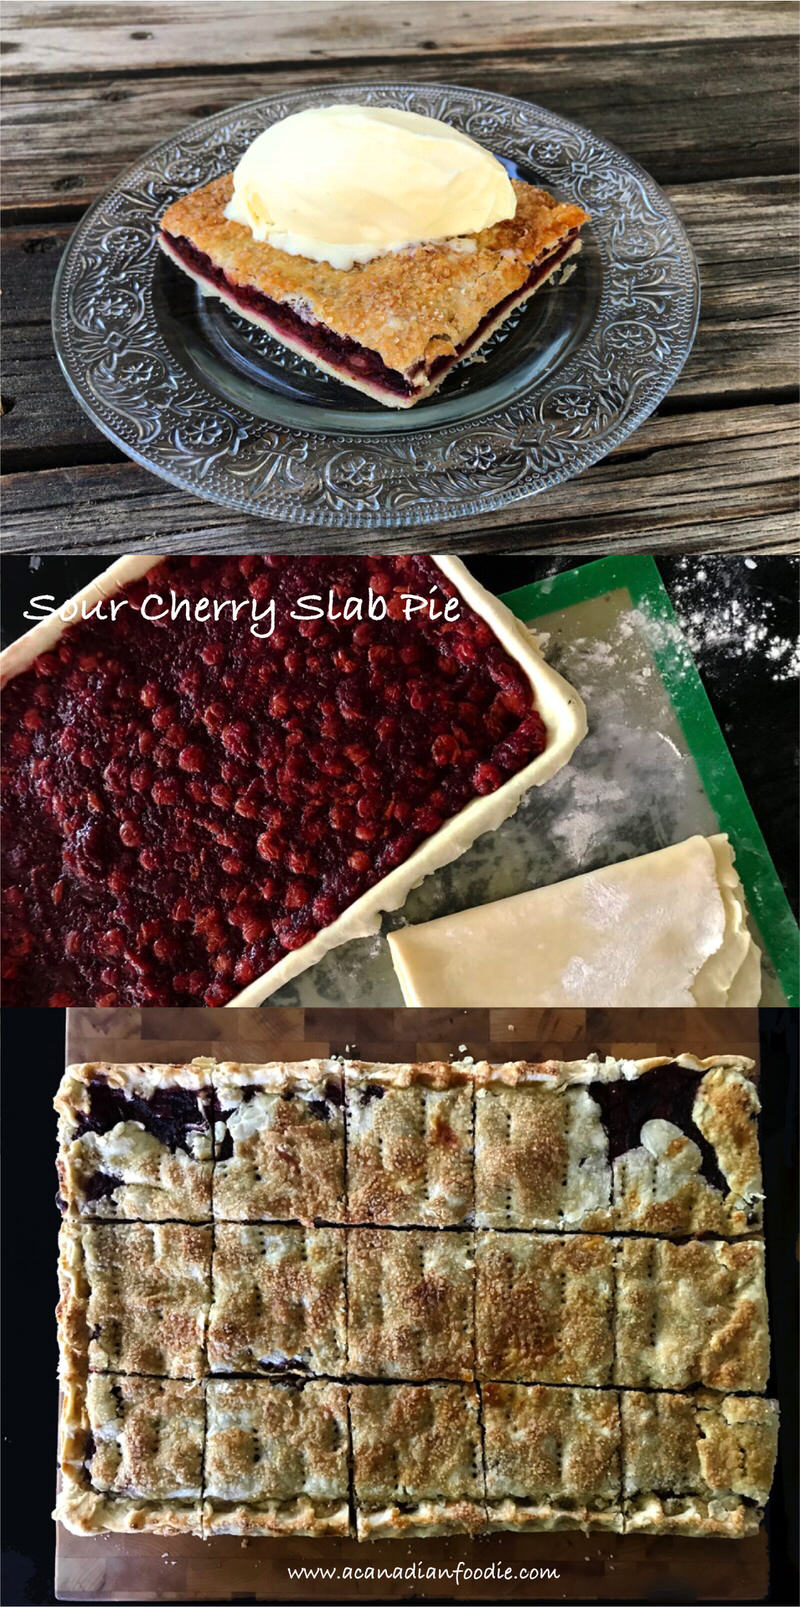 Sour Cherry Slab Pie: A Simple Twist on a Traditional Recipe! A little more pastry the pie filling creates a hand pie experience perfect for picnics. #sourcherries #cherrypie #cherryhandpie #cherryslabpie